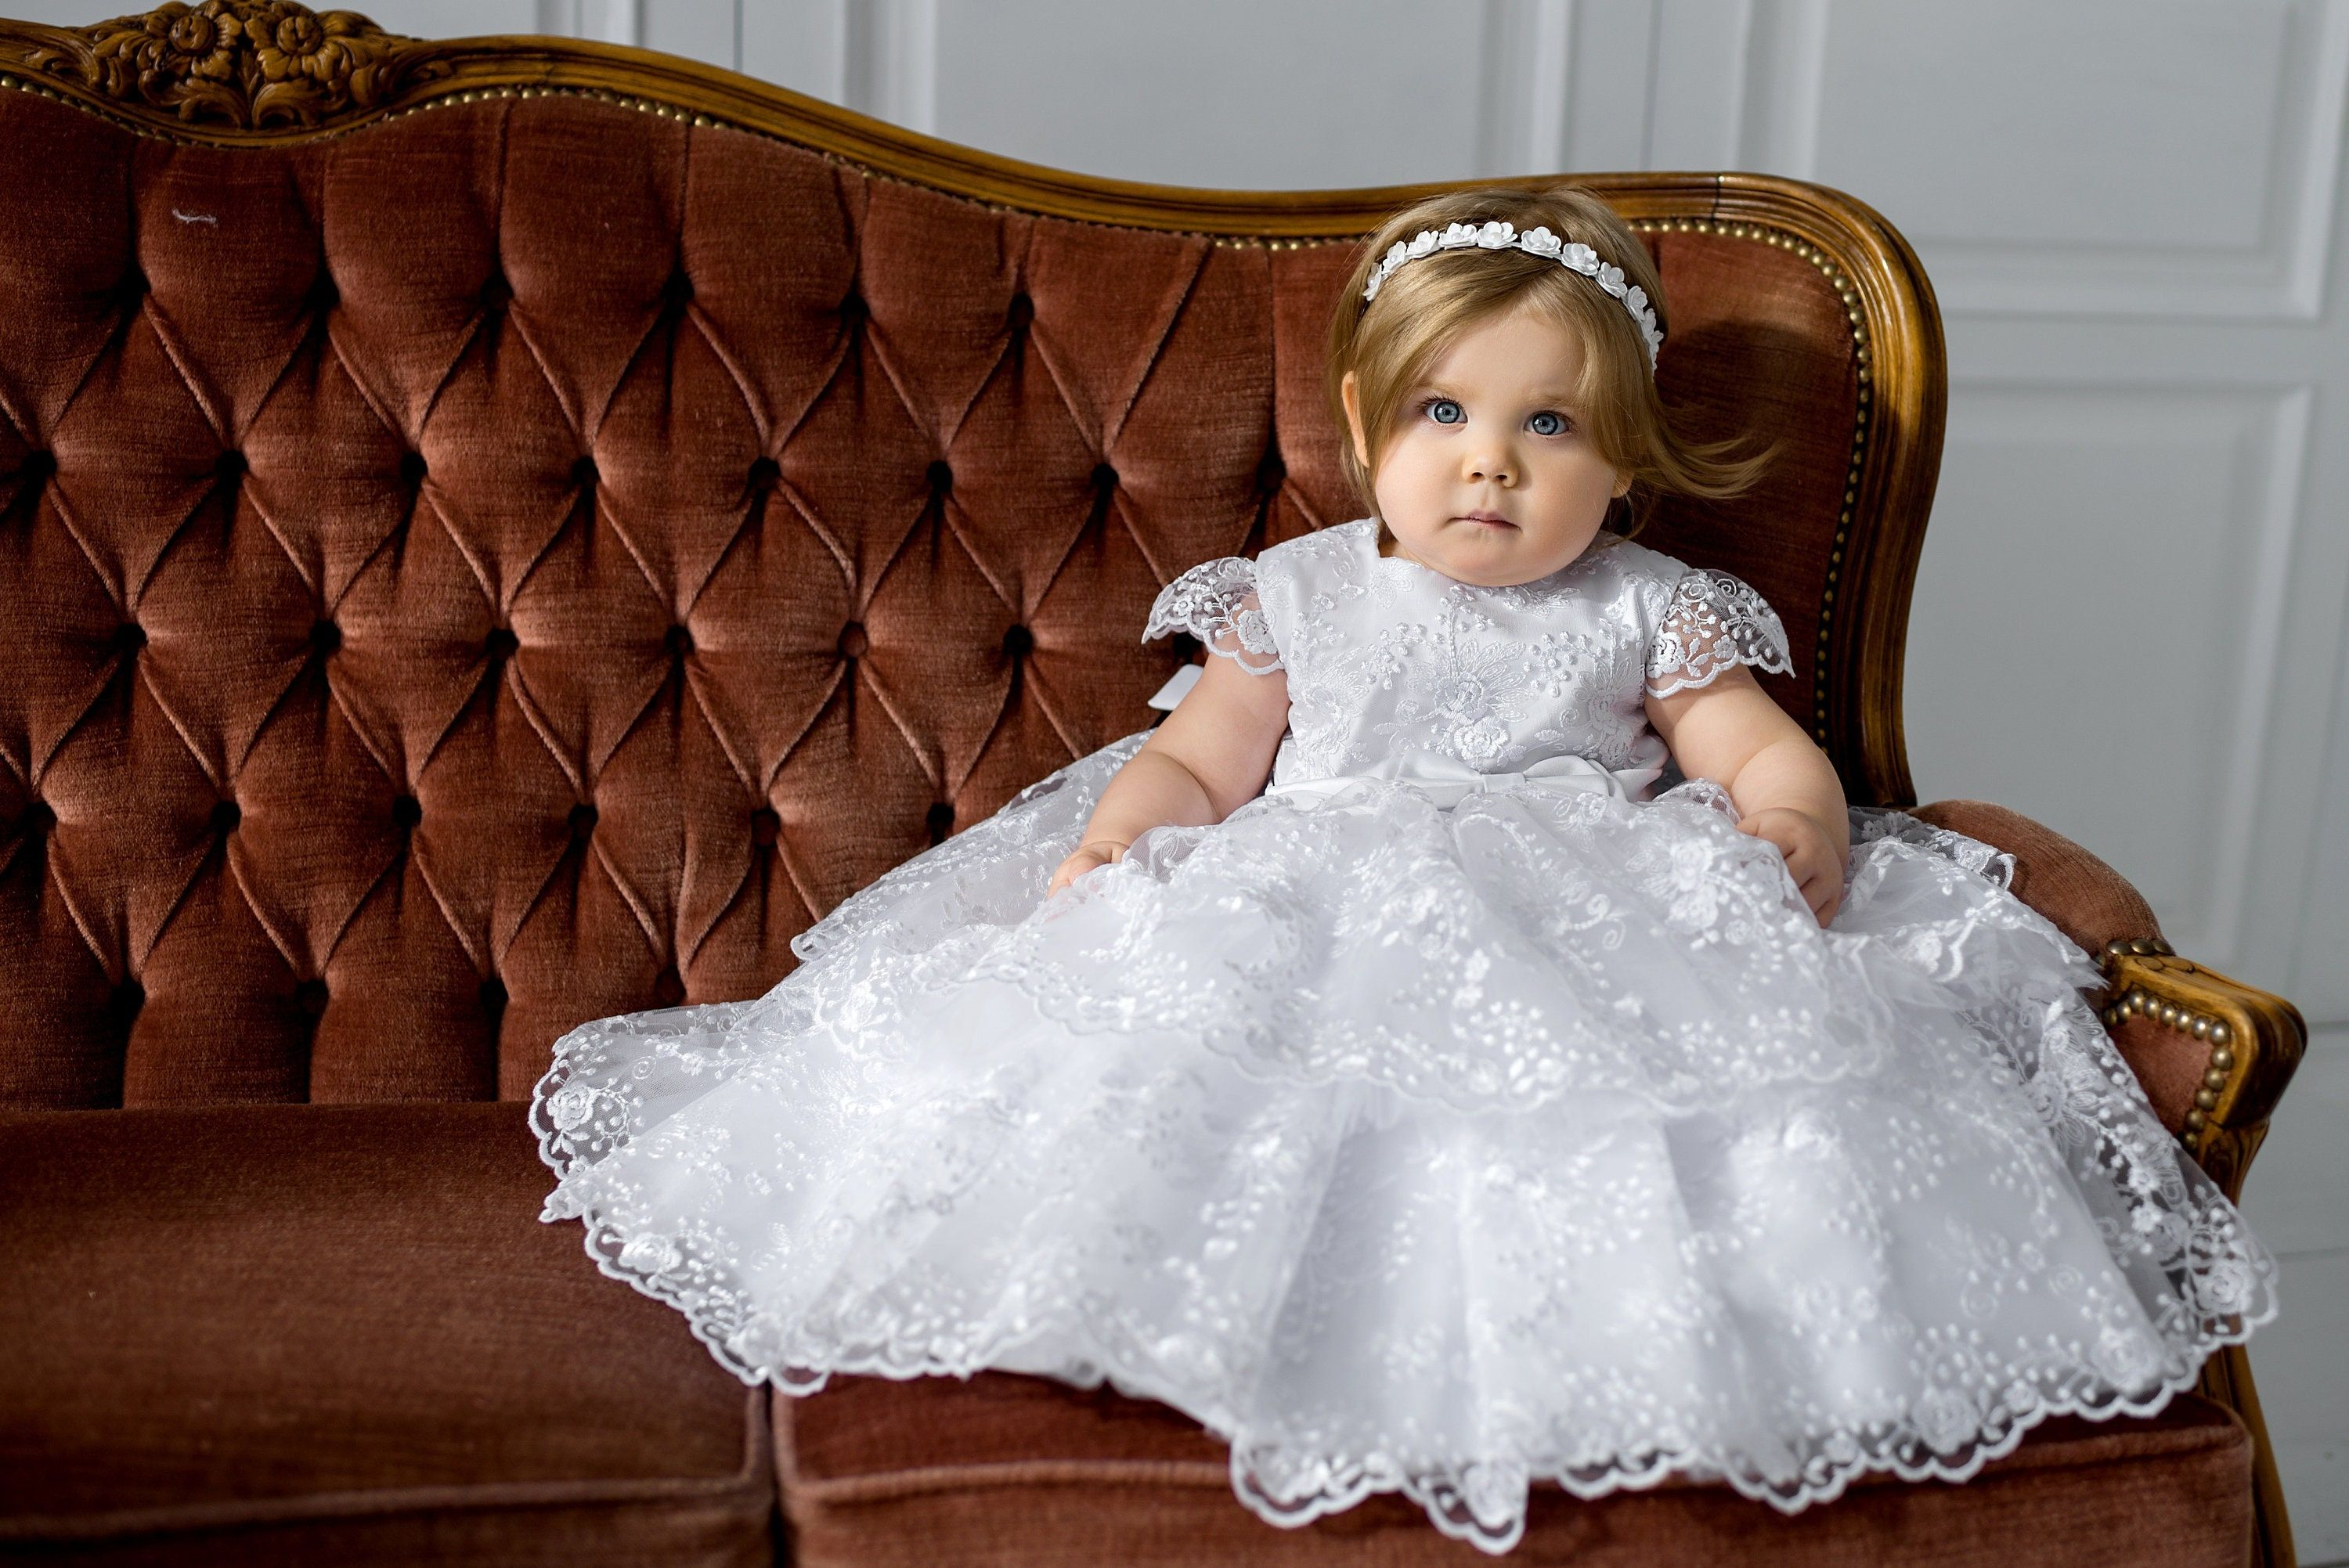 """""""This white christening gown girl ideal for a special Occasion. Very beautiful baptism dress for little girls. This dress is made with love. Baptism dress for baby girl. Made for you. With exceptional attention to even the smallest details. You may also order accessories to these dresses. Christening shoes, baptism blanket, bib, headband, veil If you have any doubts, please contact us so we can help you find the best size. The weight and height of a child is not a good way to determine size. We"""